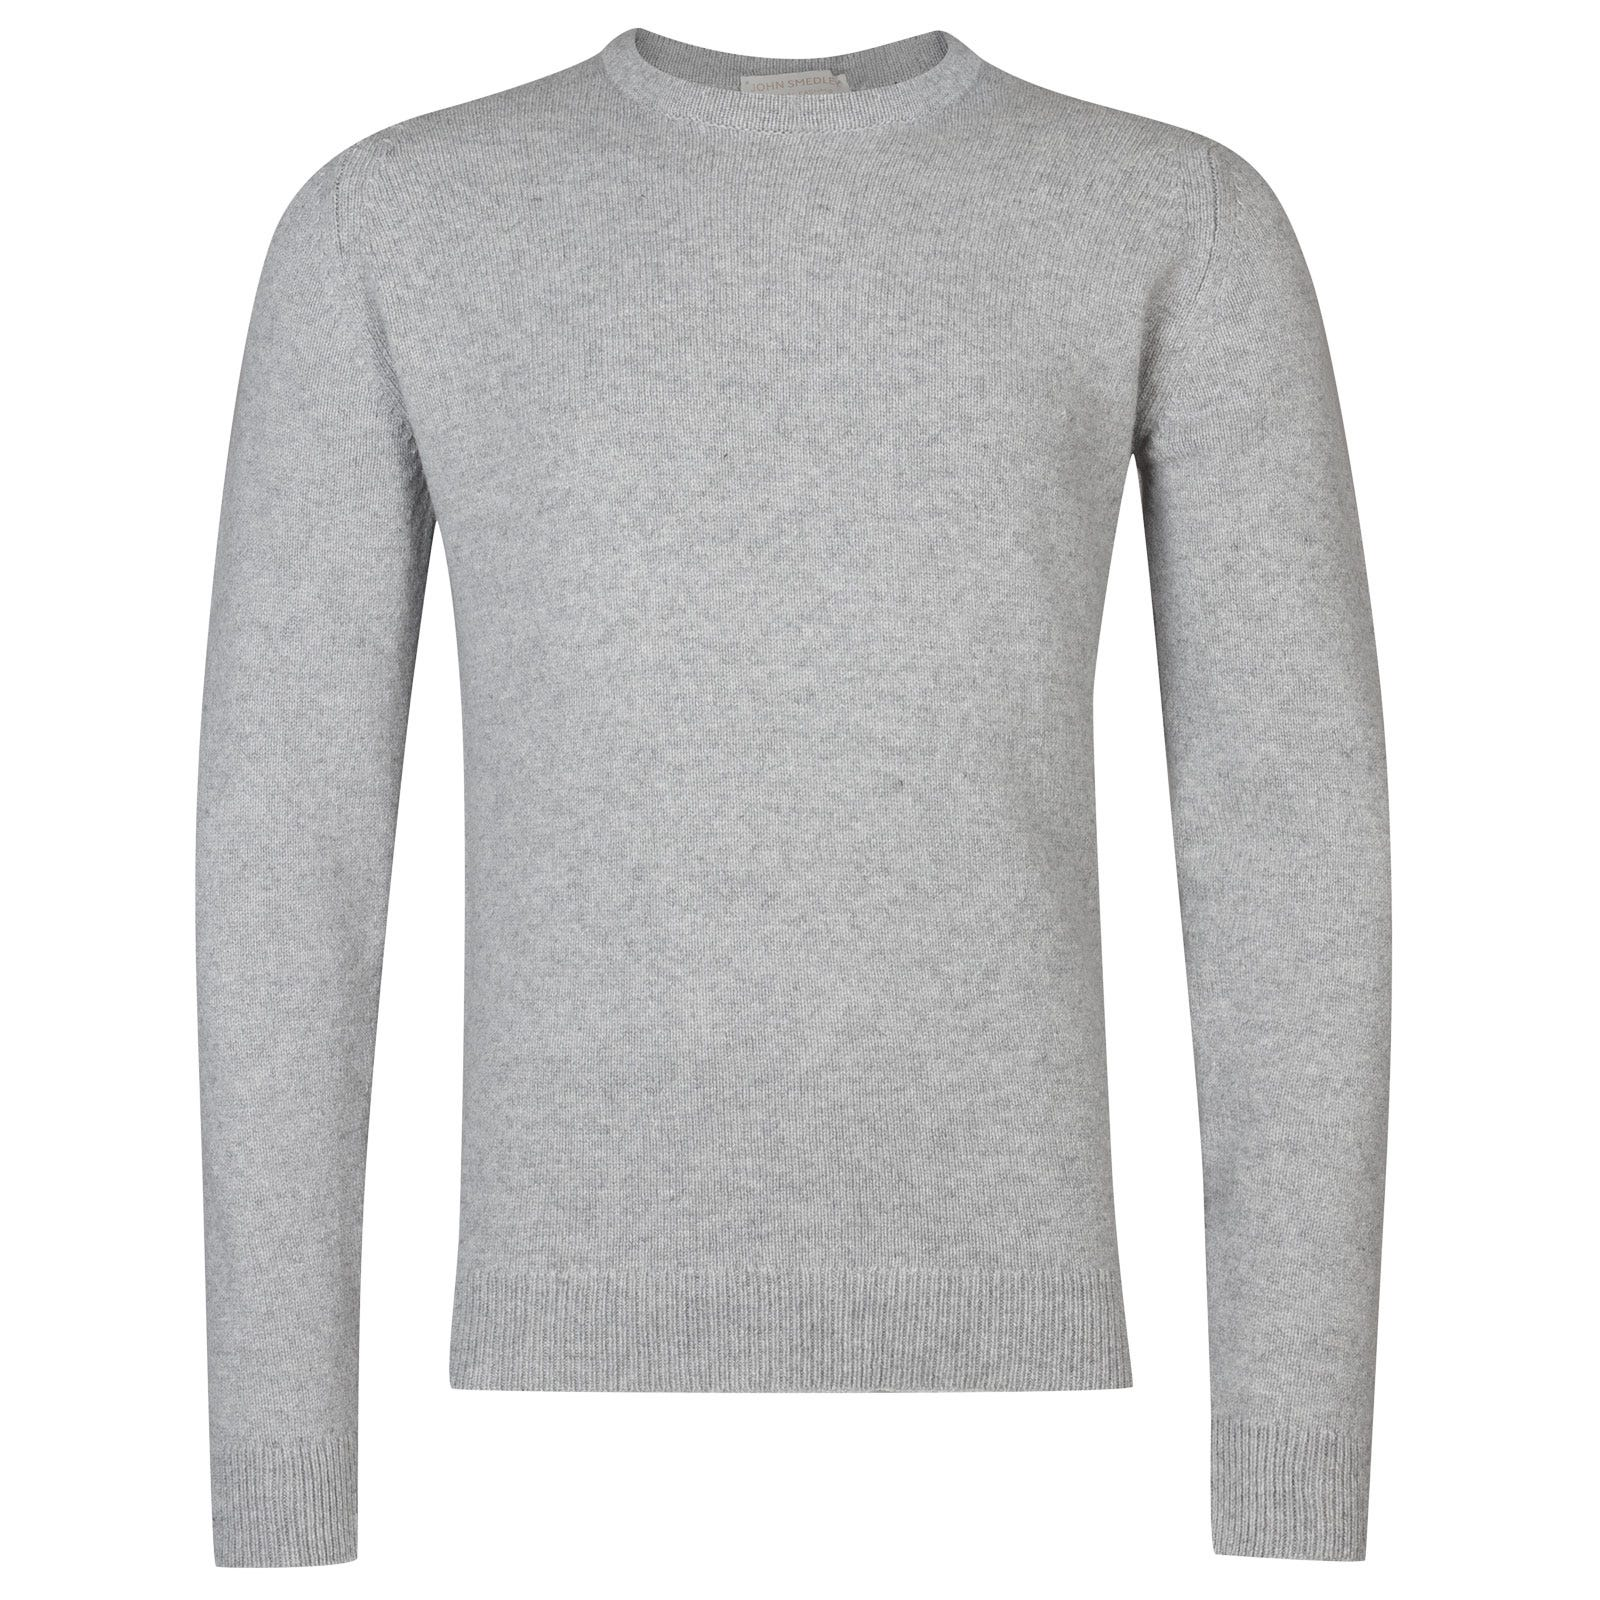 John Smedley Crowford Wool and Cashmere Pullover in Silver-XL